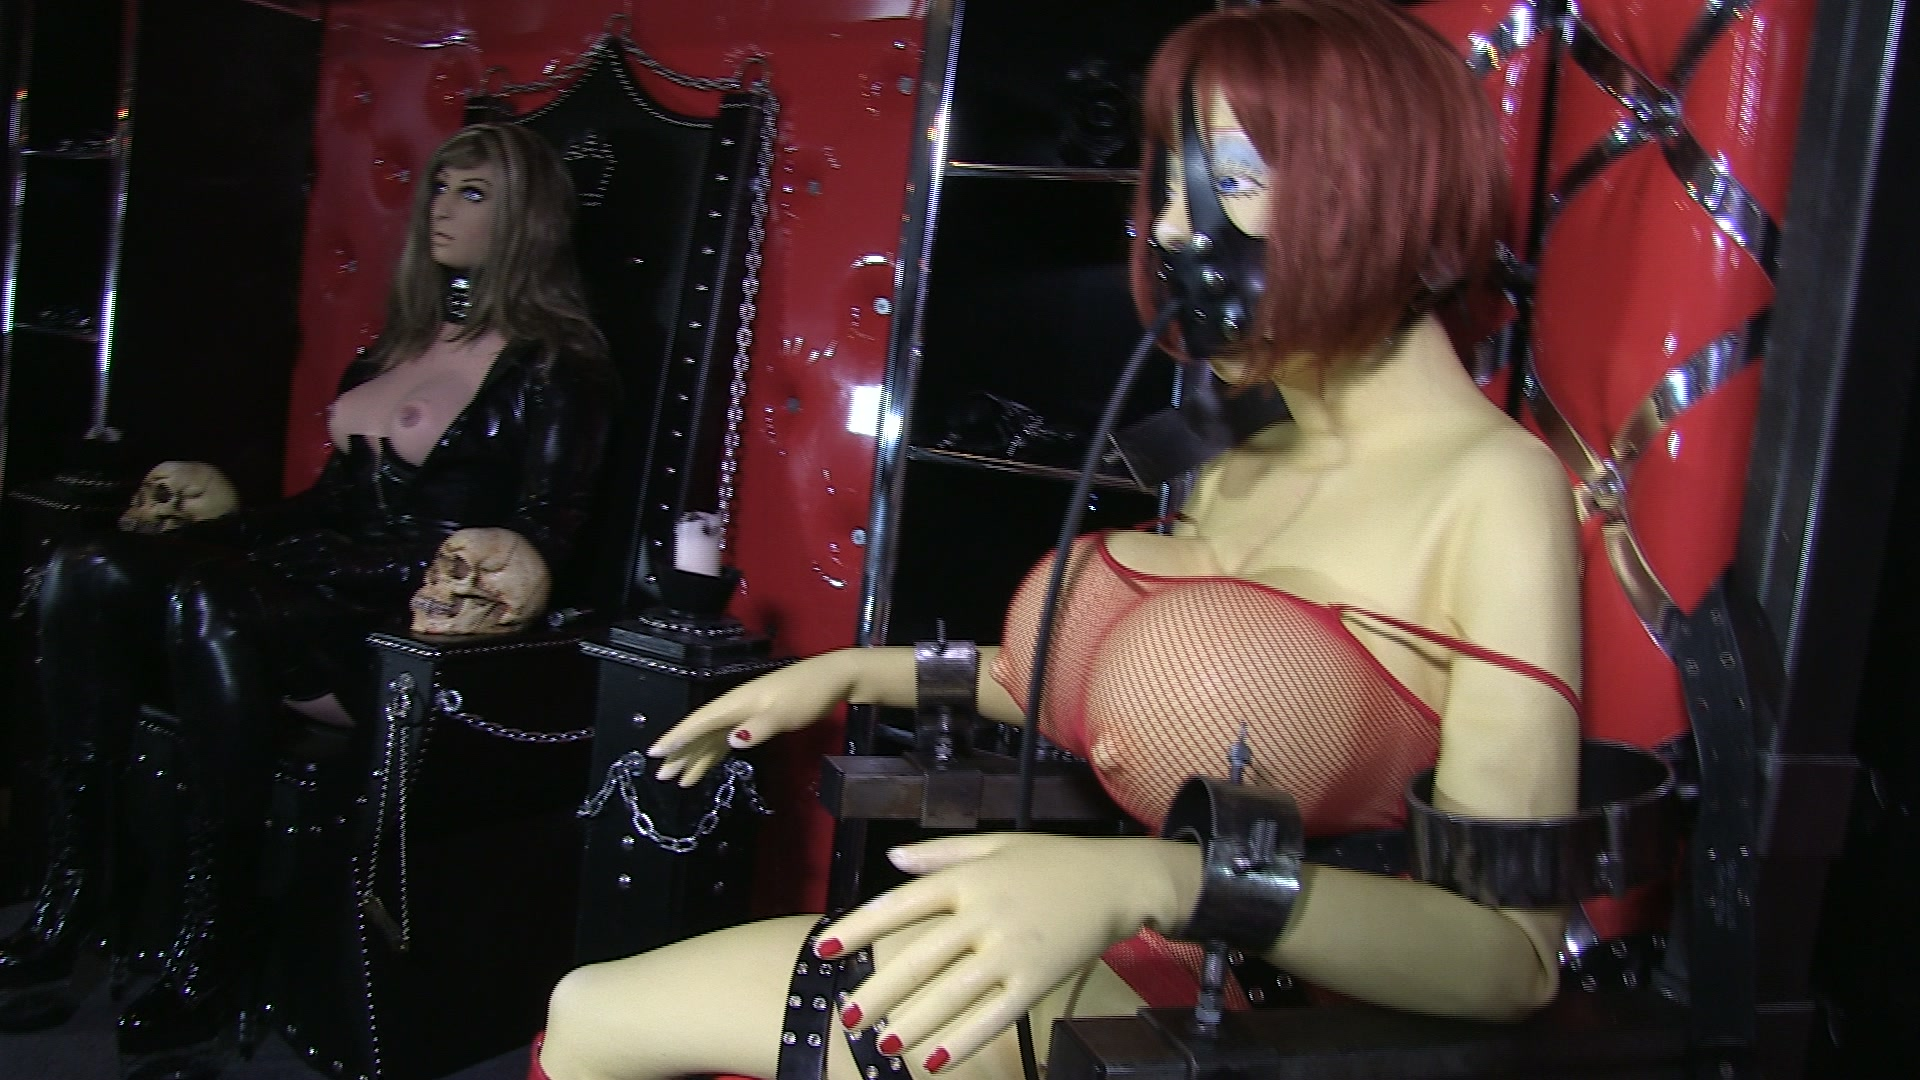 Dominated Puppet Girl